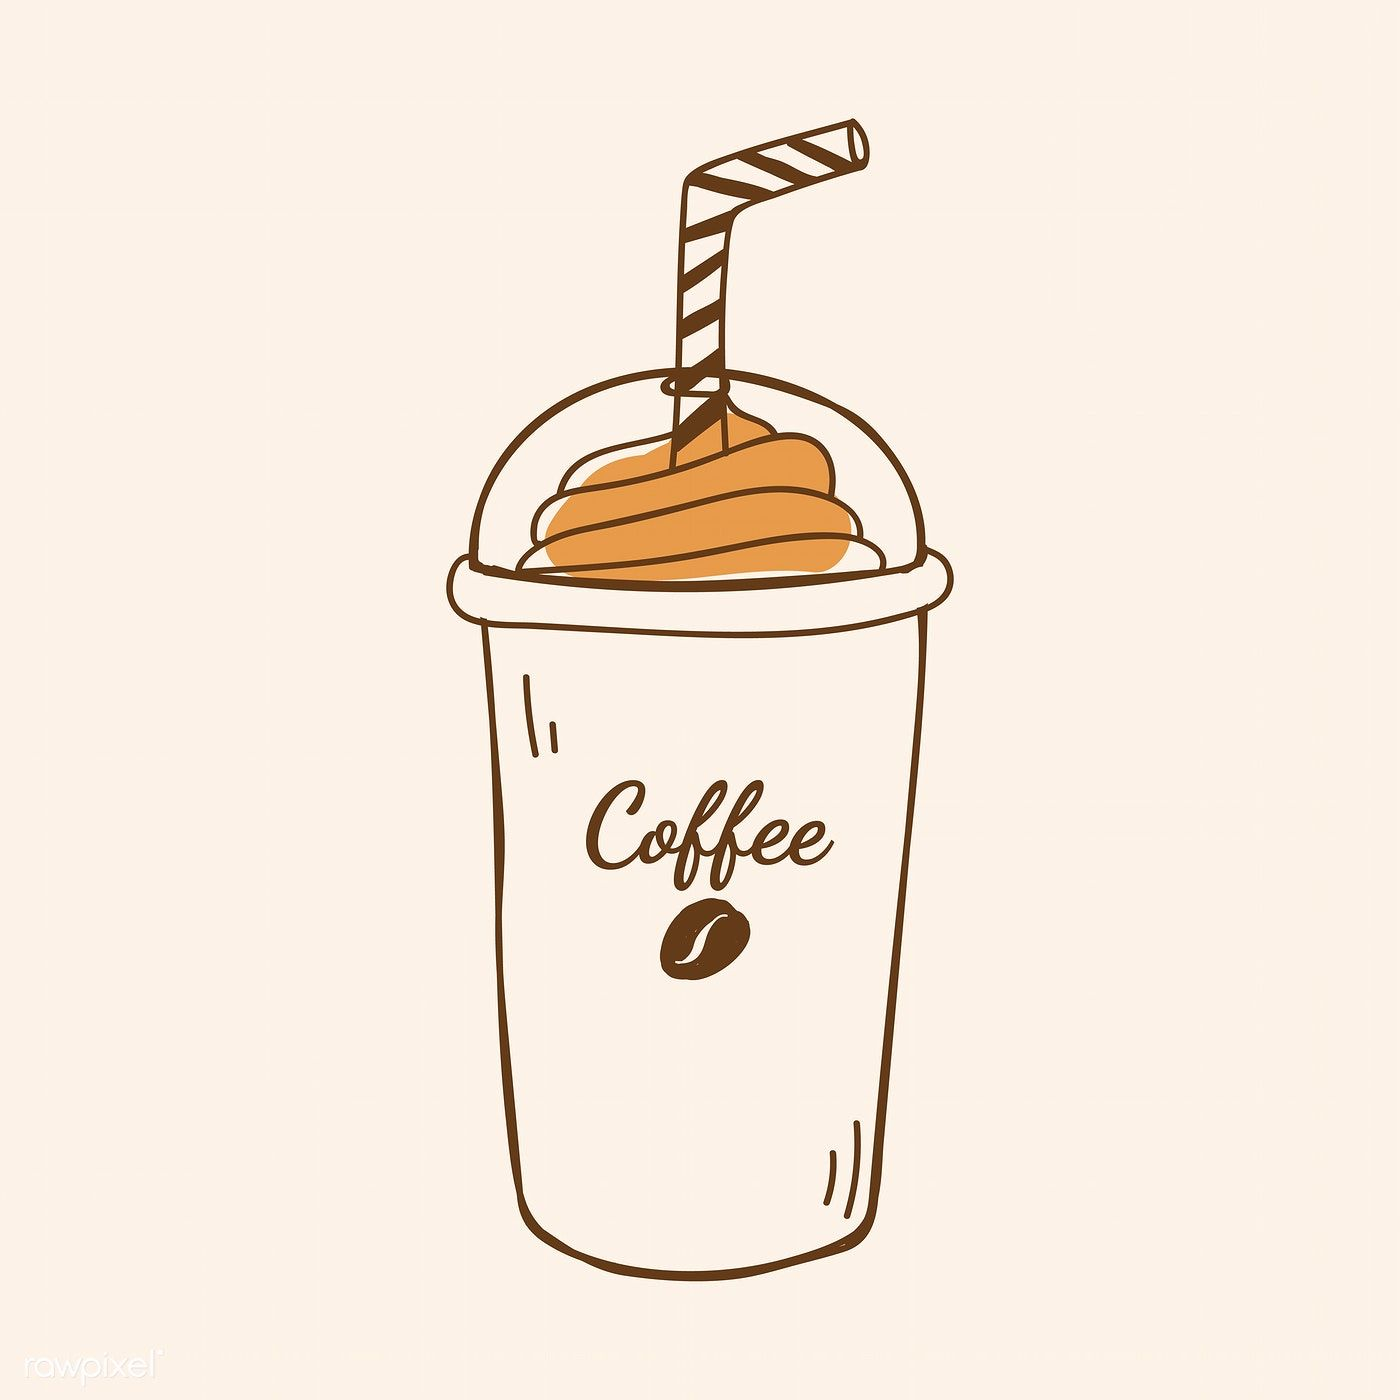 mocha frappe coffee shop icon vector free image by rawpixel com coffee icon frappe coffee artwork mocha frappe coffee shop icon vector